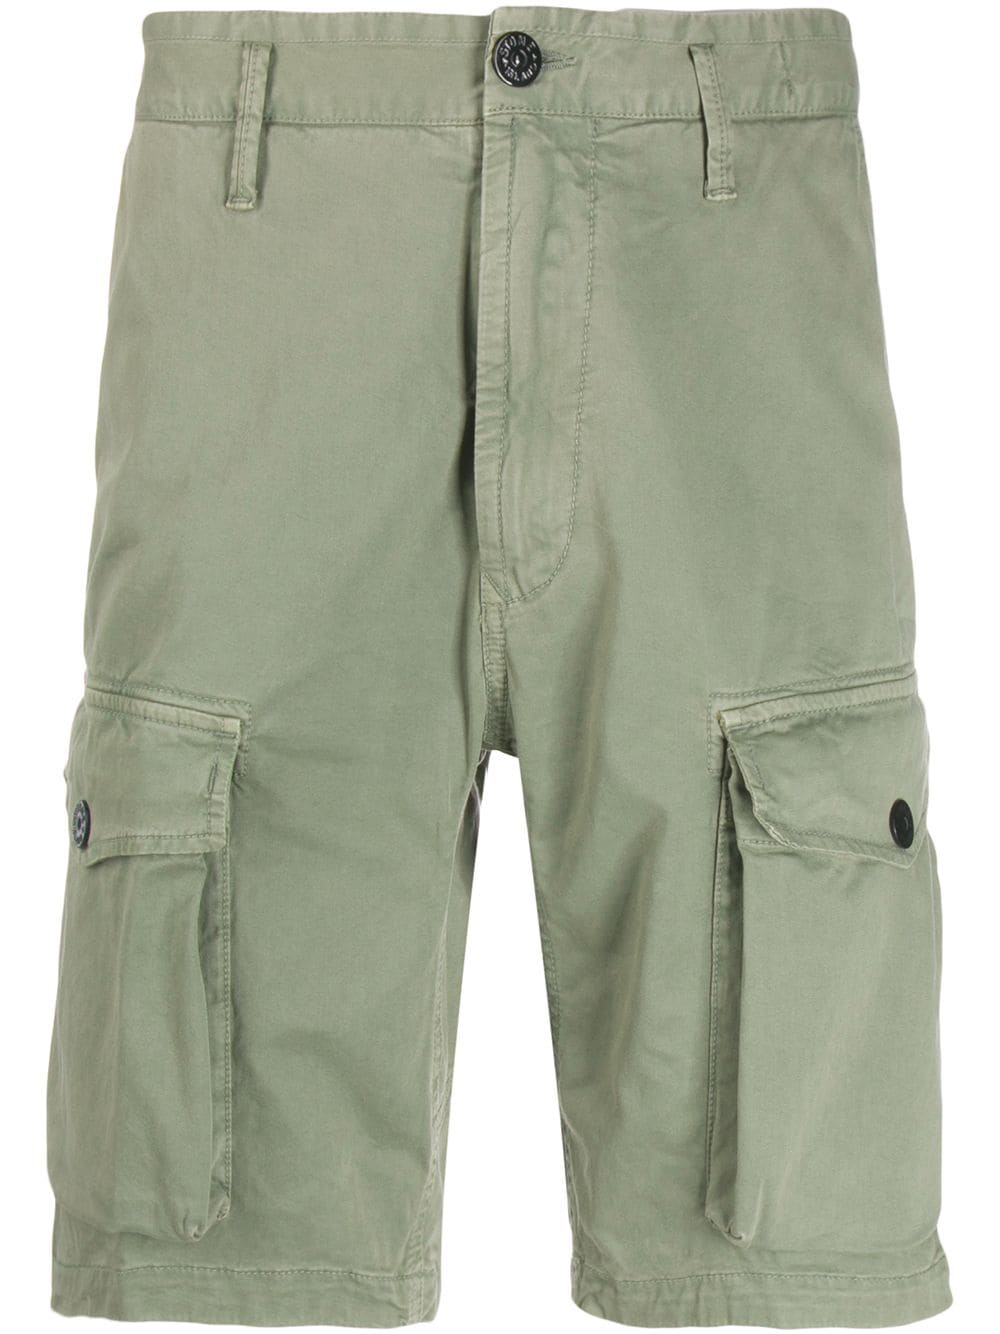 Stone Island Short Cargo Pants Green With Images Stone Island Shorts Stone Island Jeans Cargo Pants